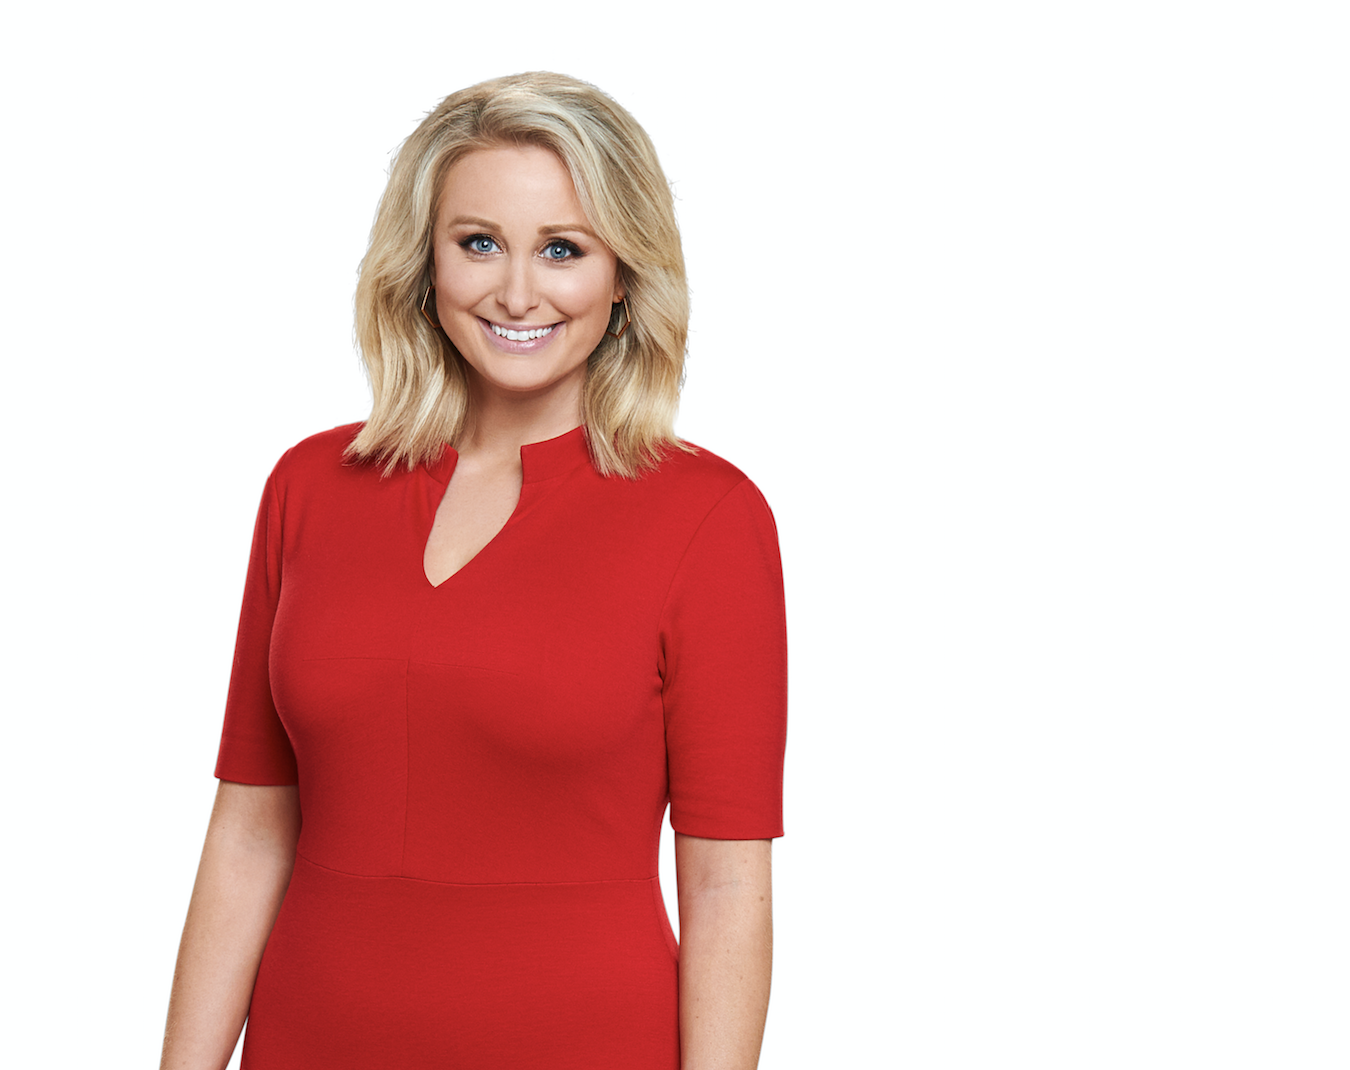 Jane Bunn: Meteorologist and Weather Presenter